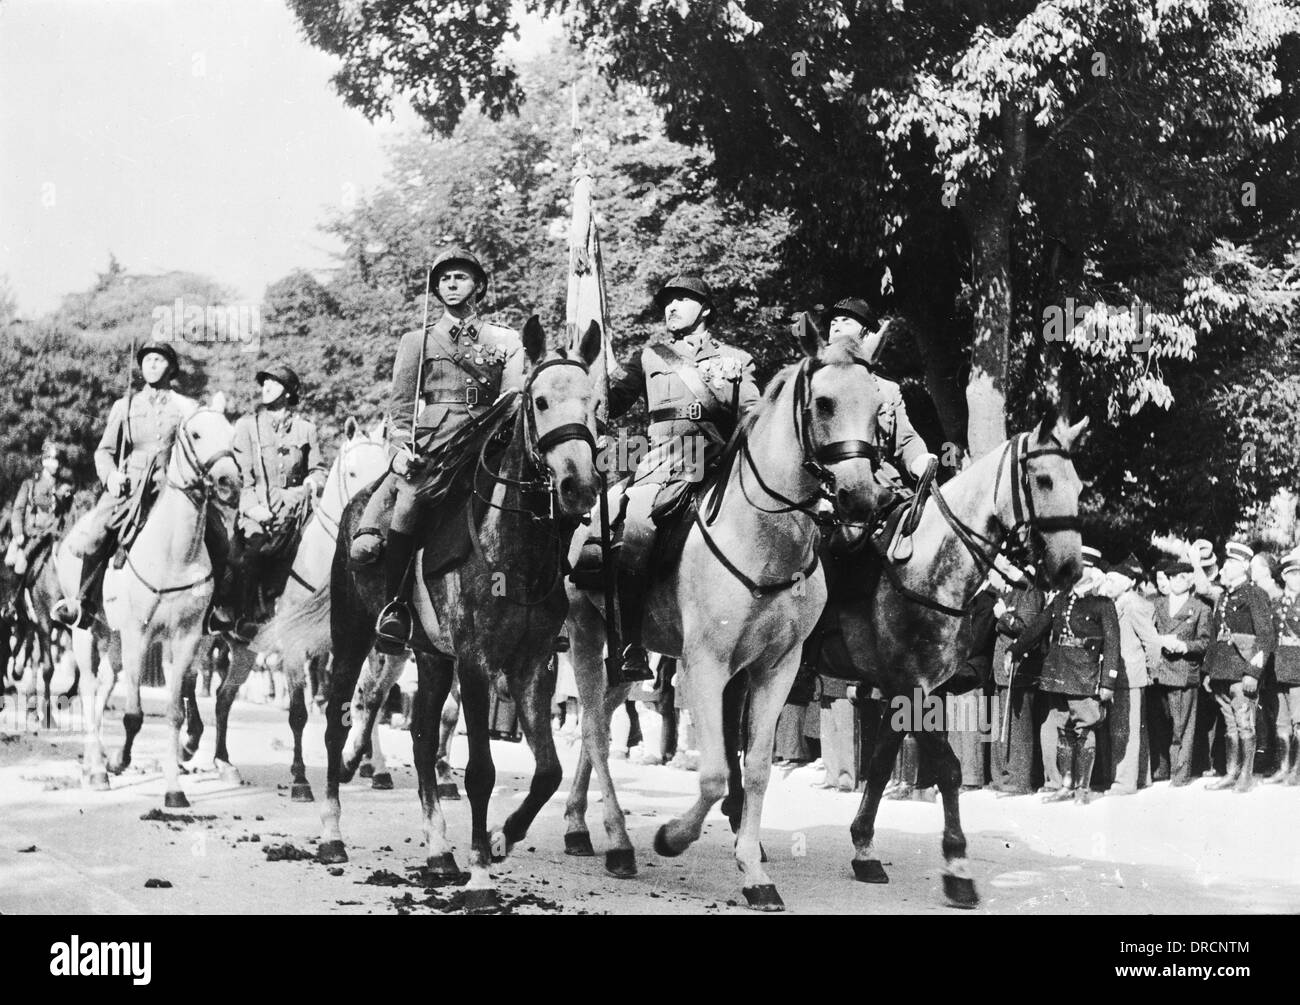 French cavalry WWII - Stock Image